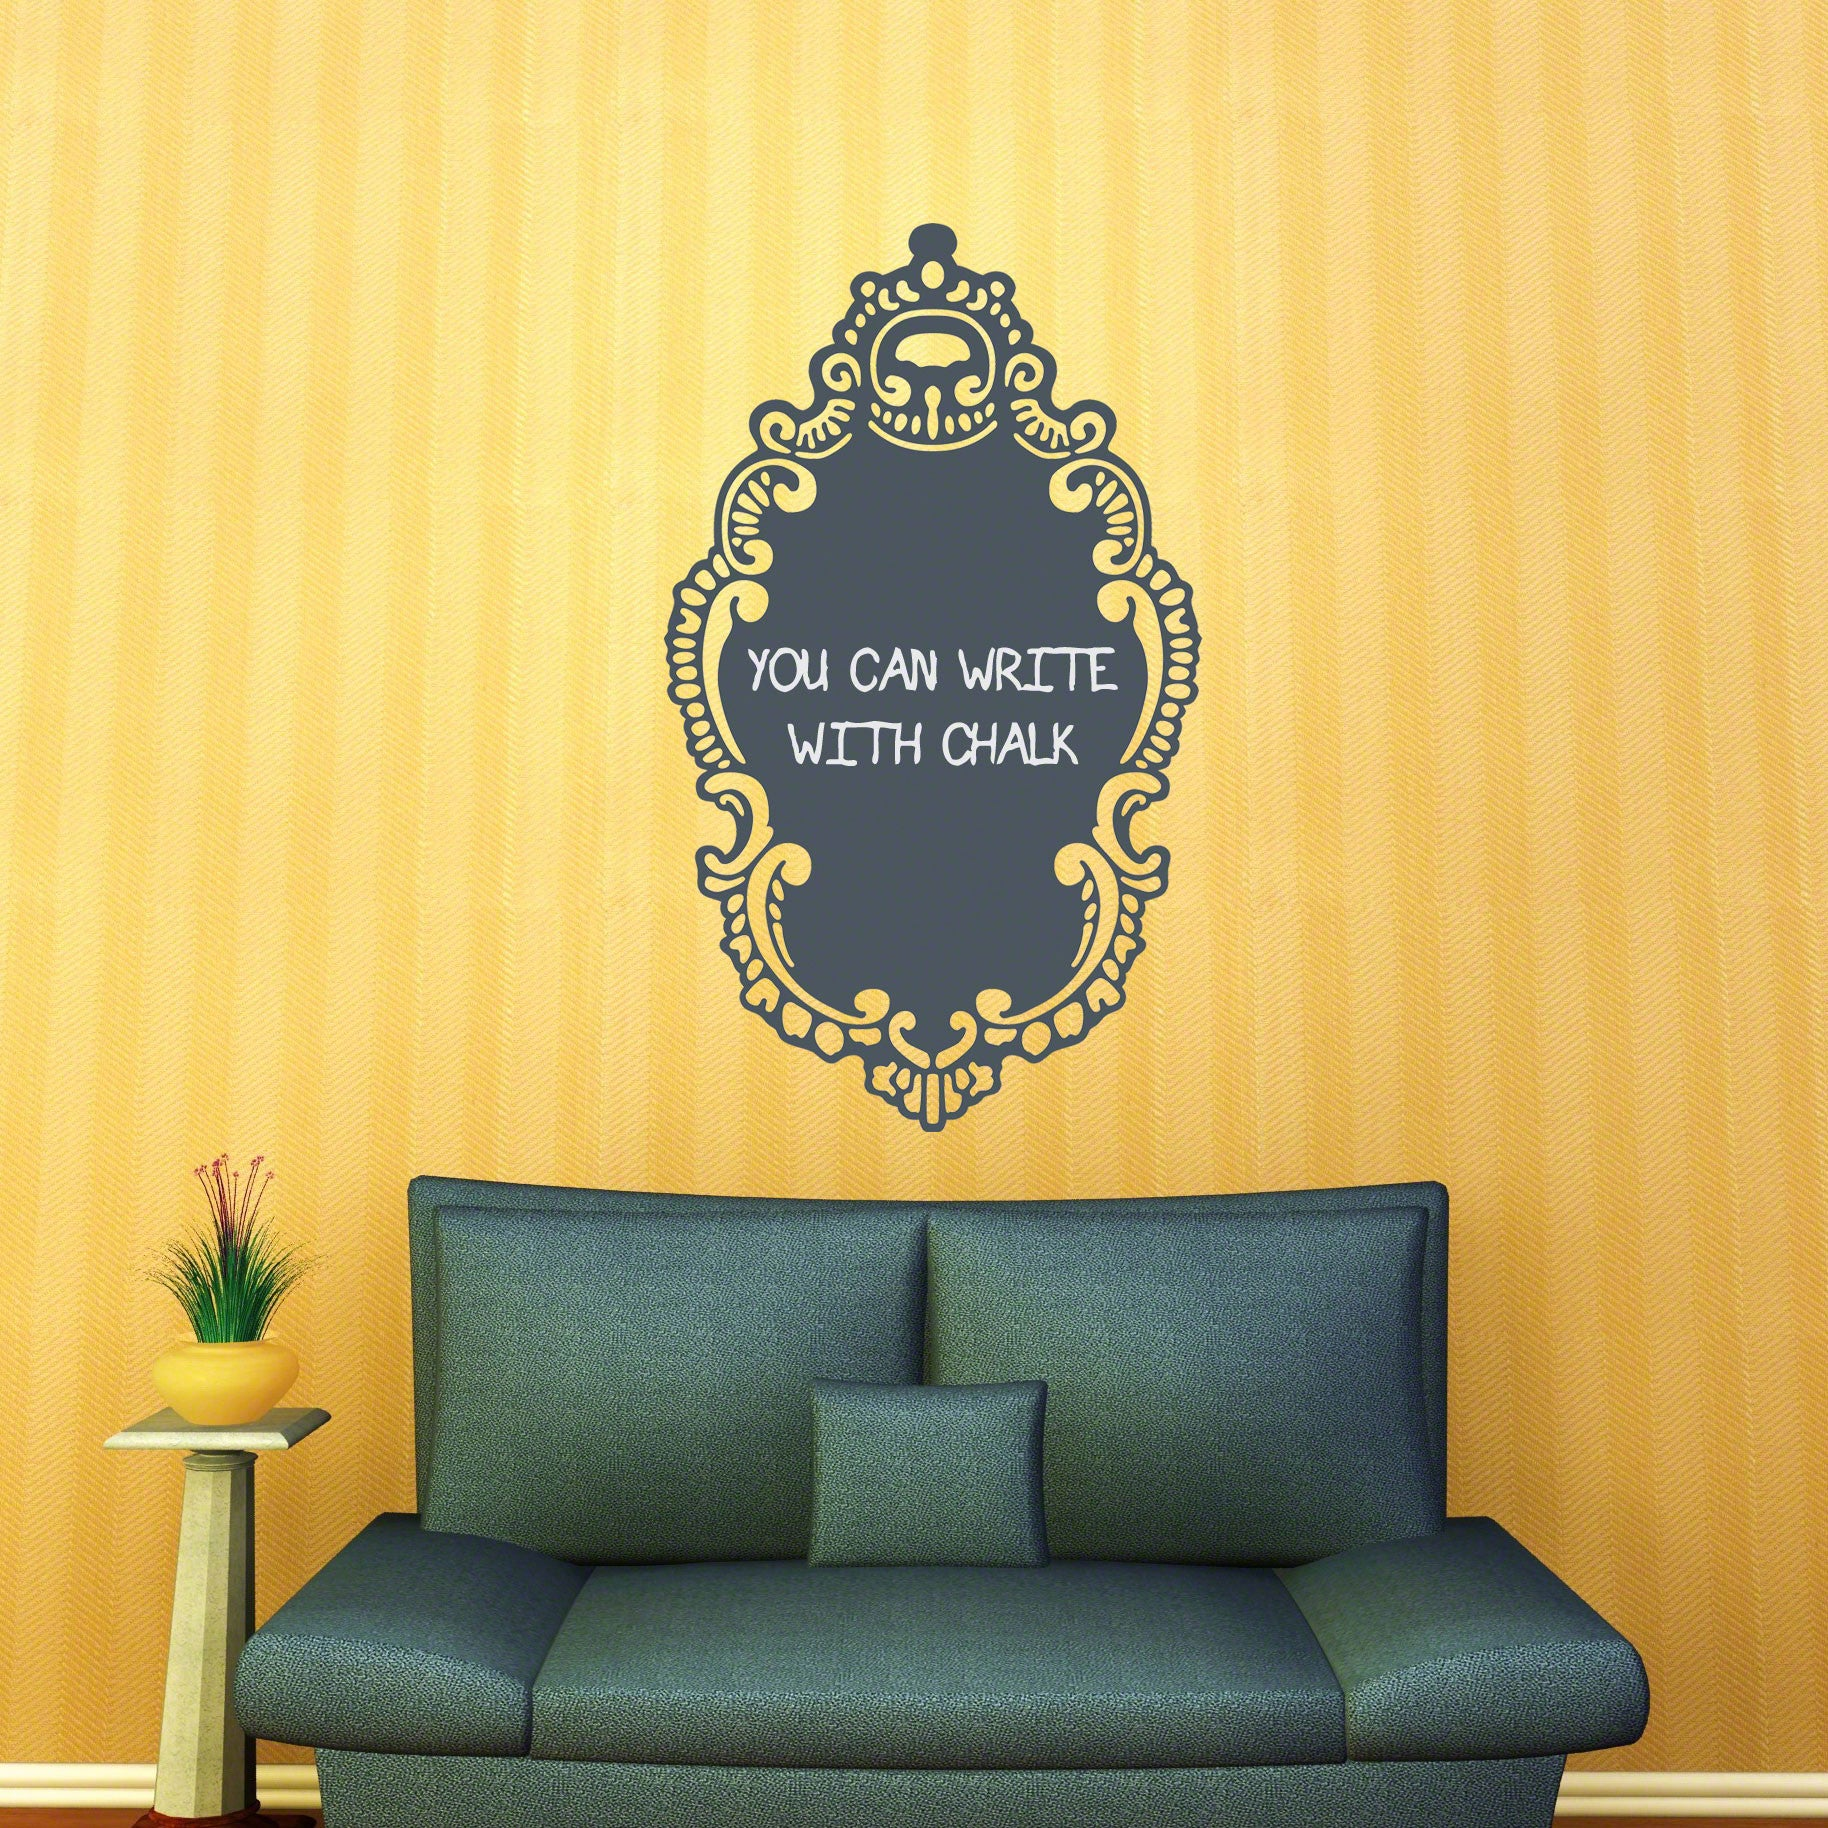 Rococo Chalkboard Wall Decal WallDecalscom - Wall decals you can write on